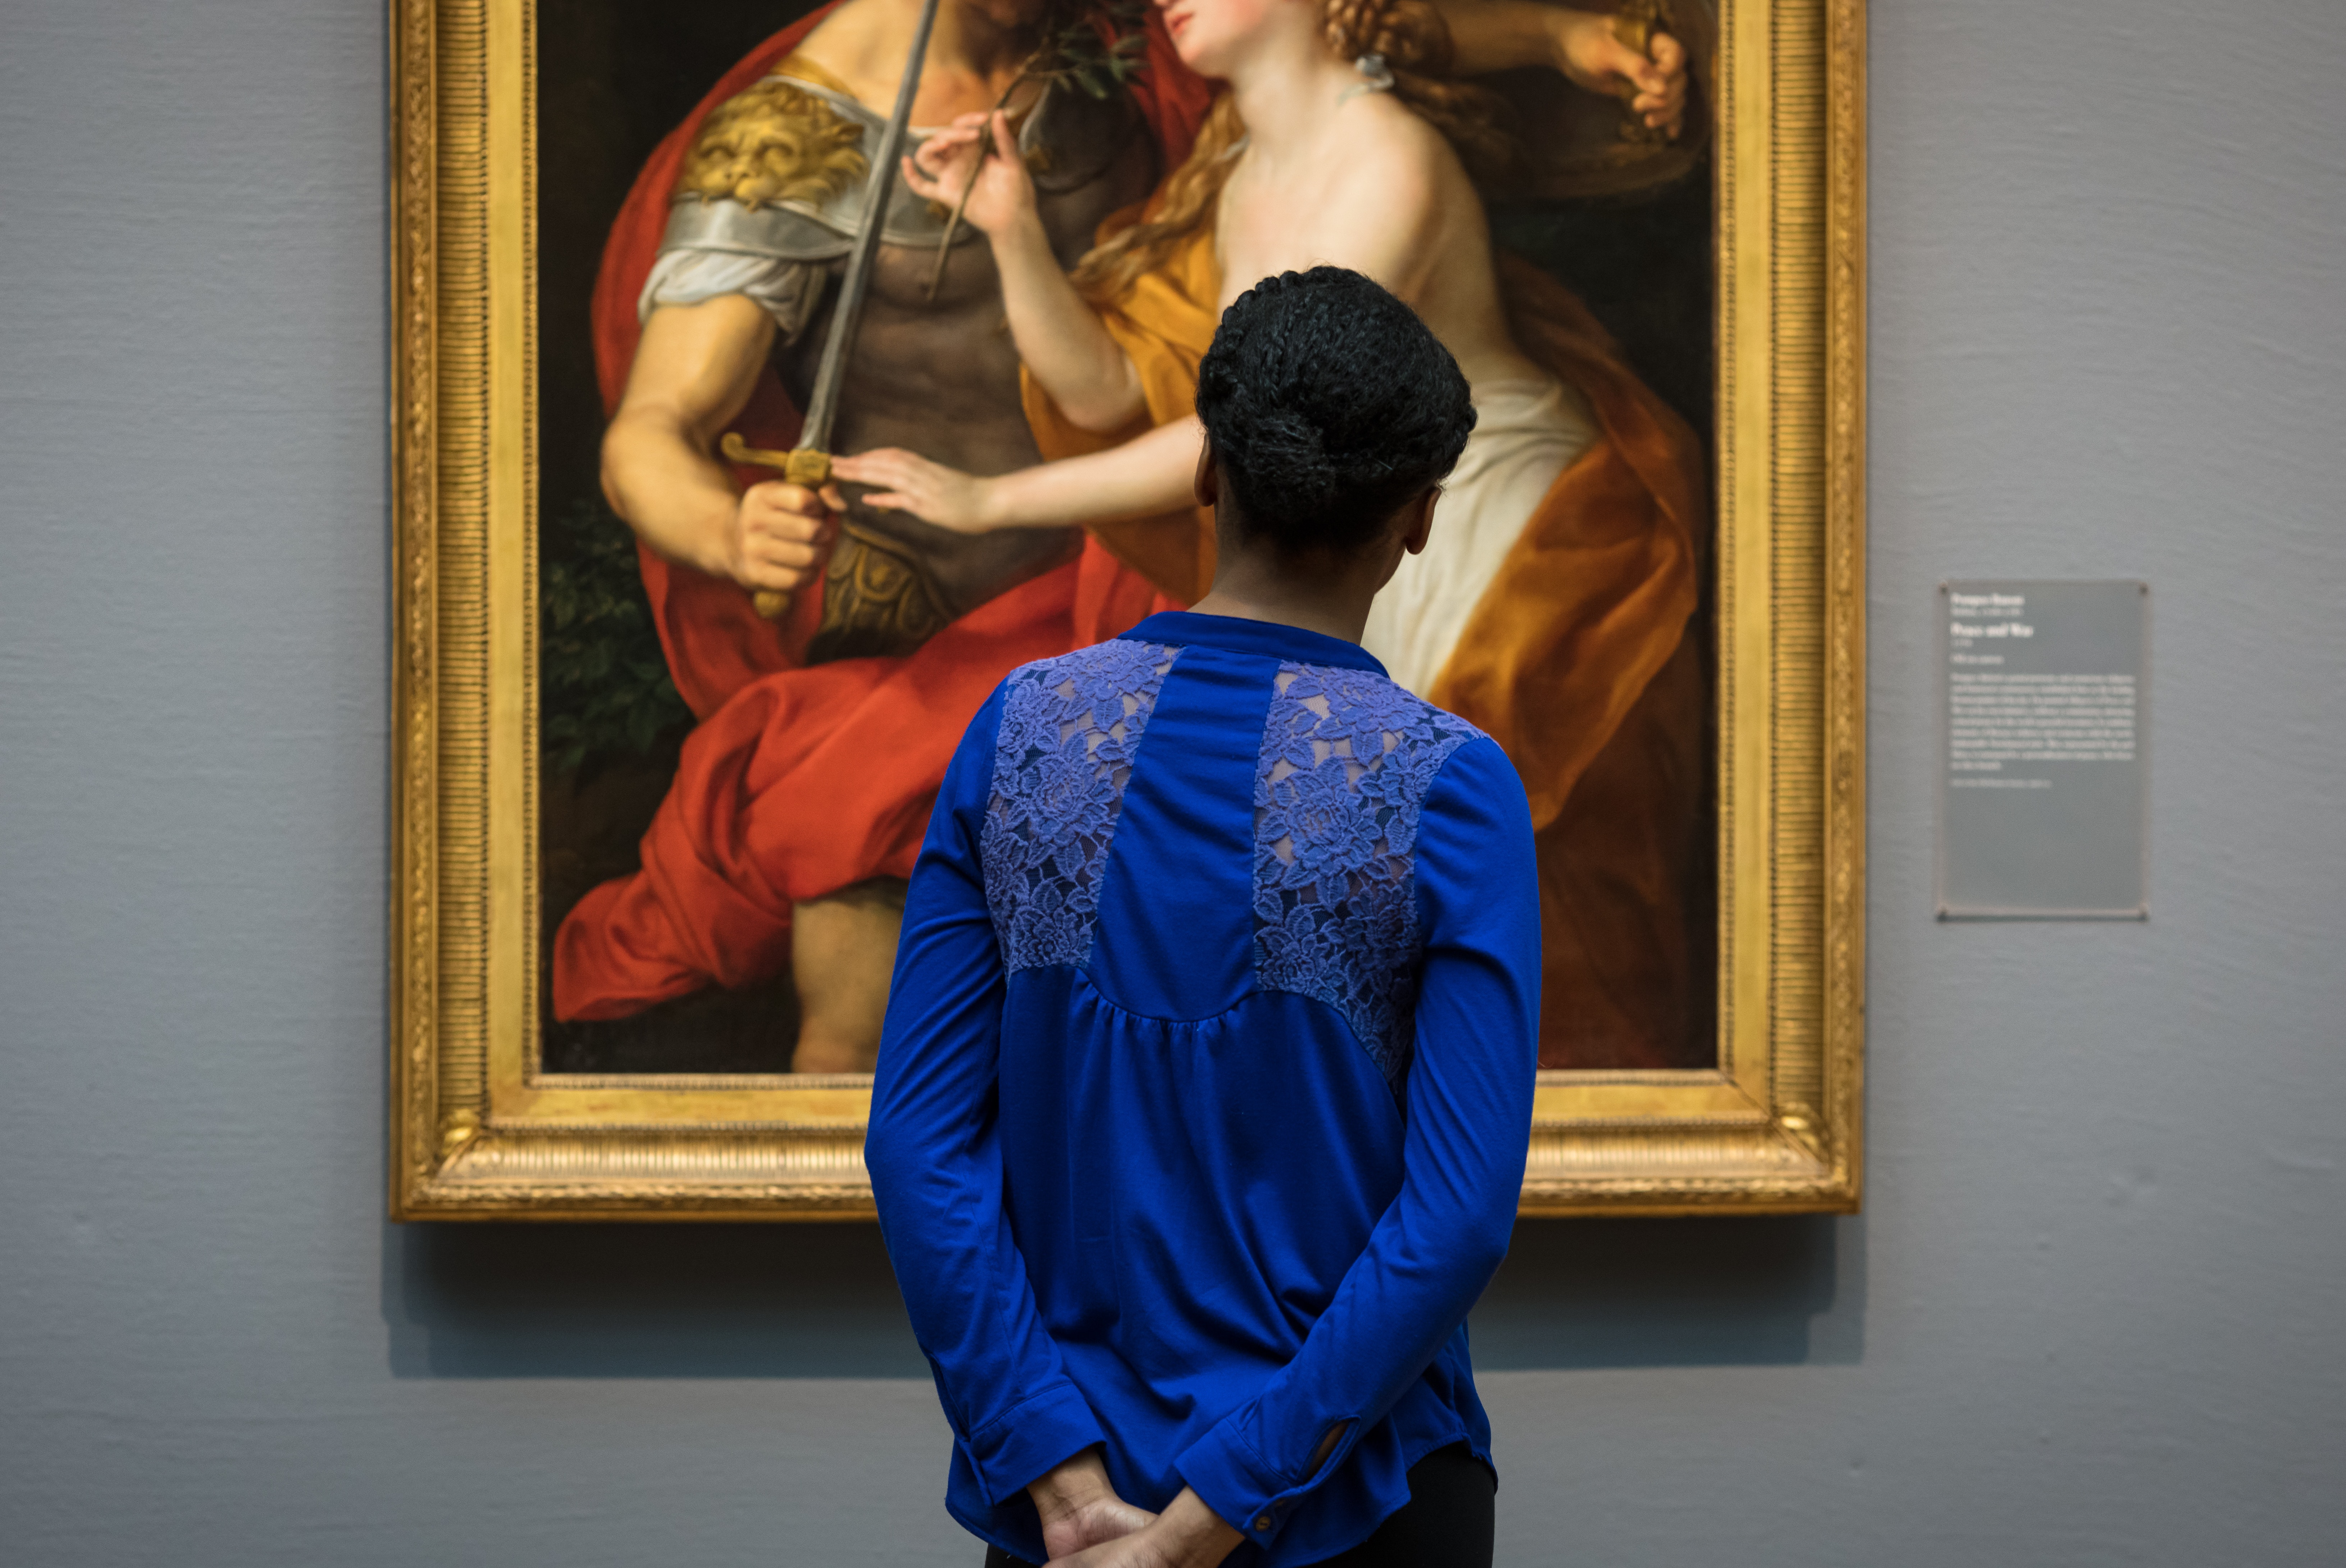 A woman stands in front of a Renaissance painting